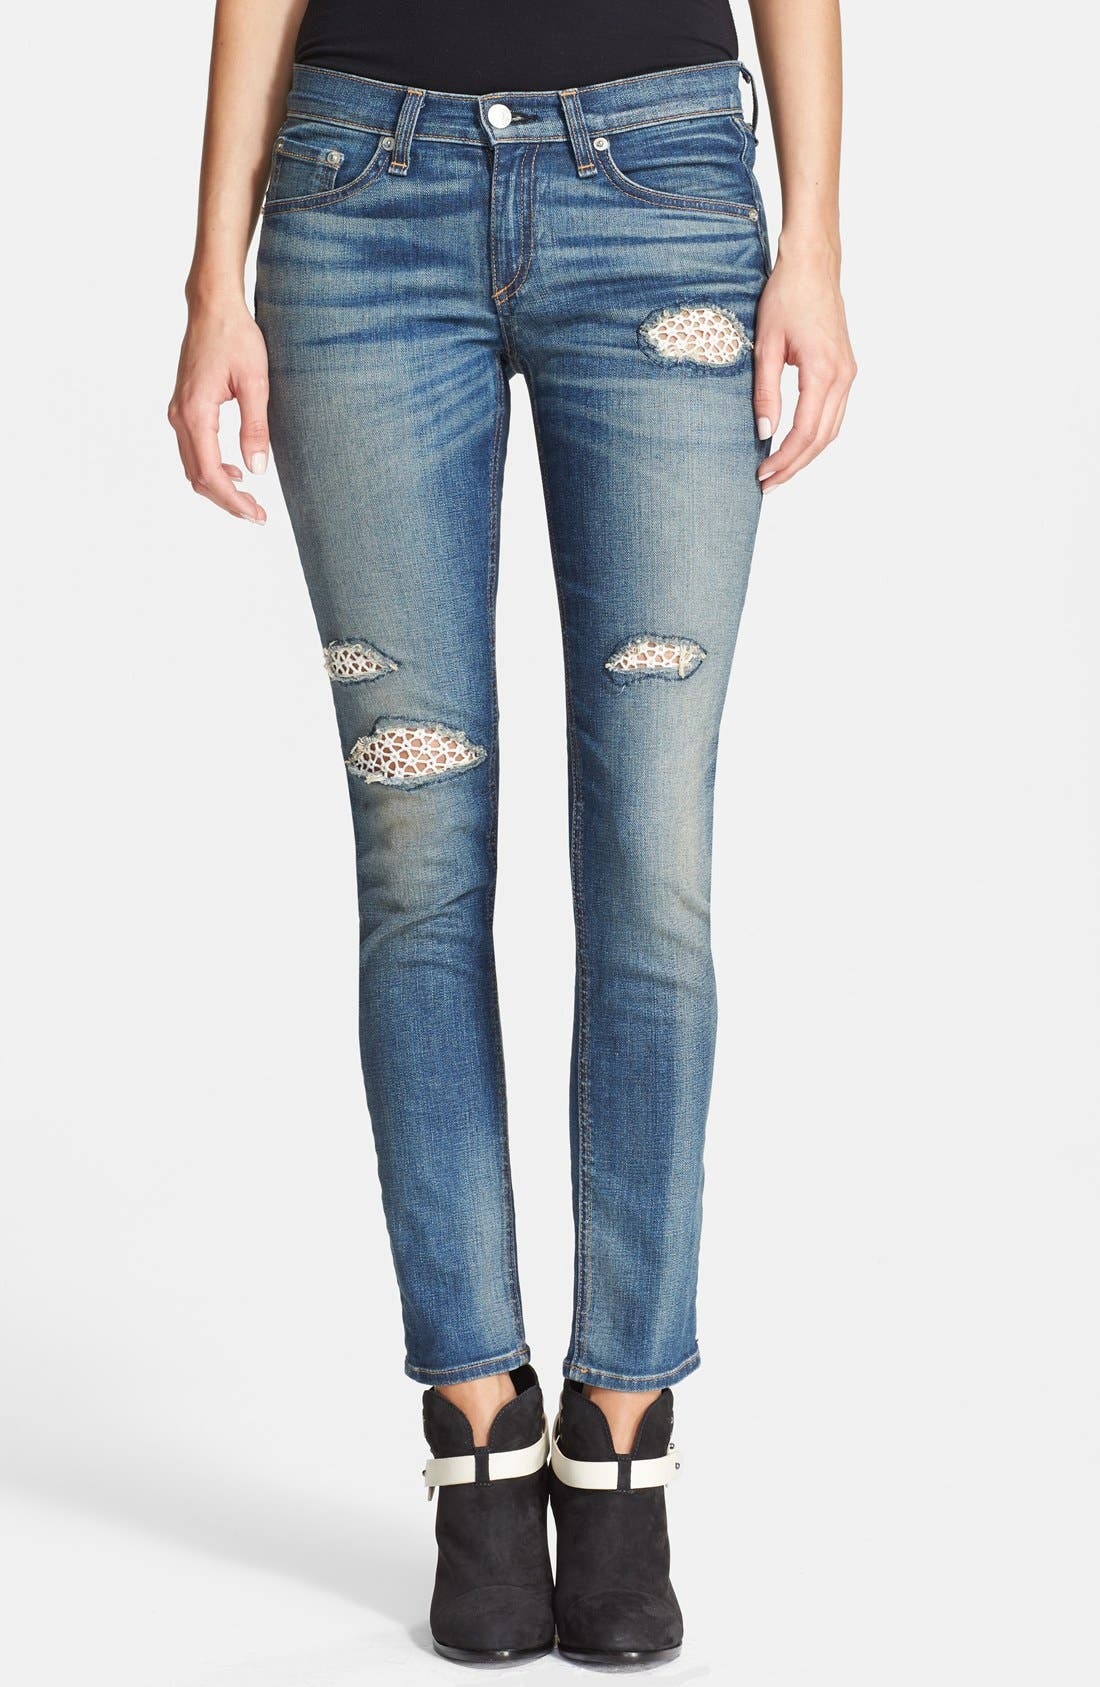 Alternate Image 1 Selected - rag & bone/JEAN Stretch Skinny Jeans (Crochet Lace)